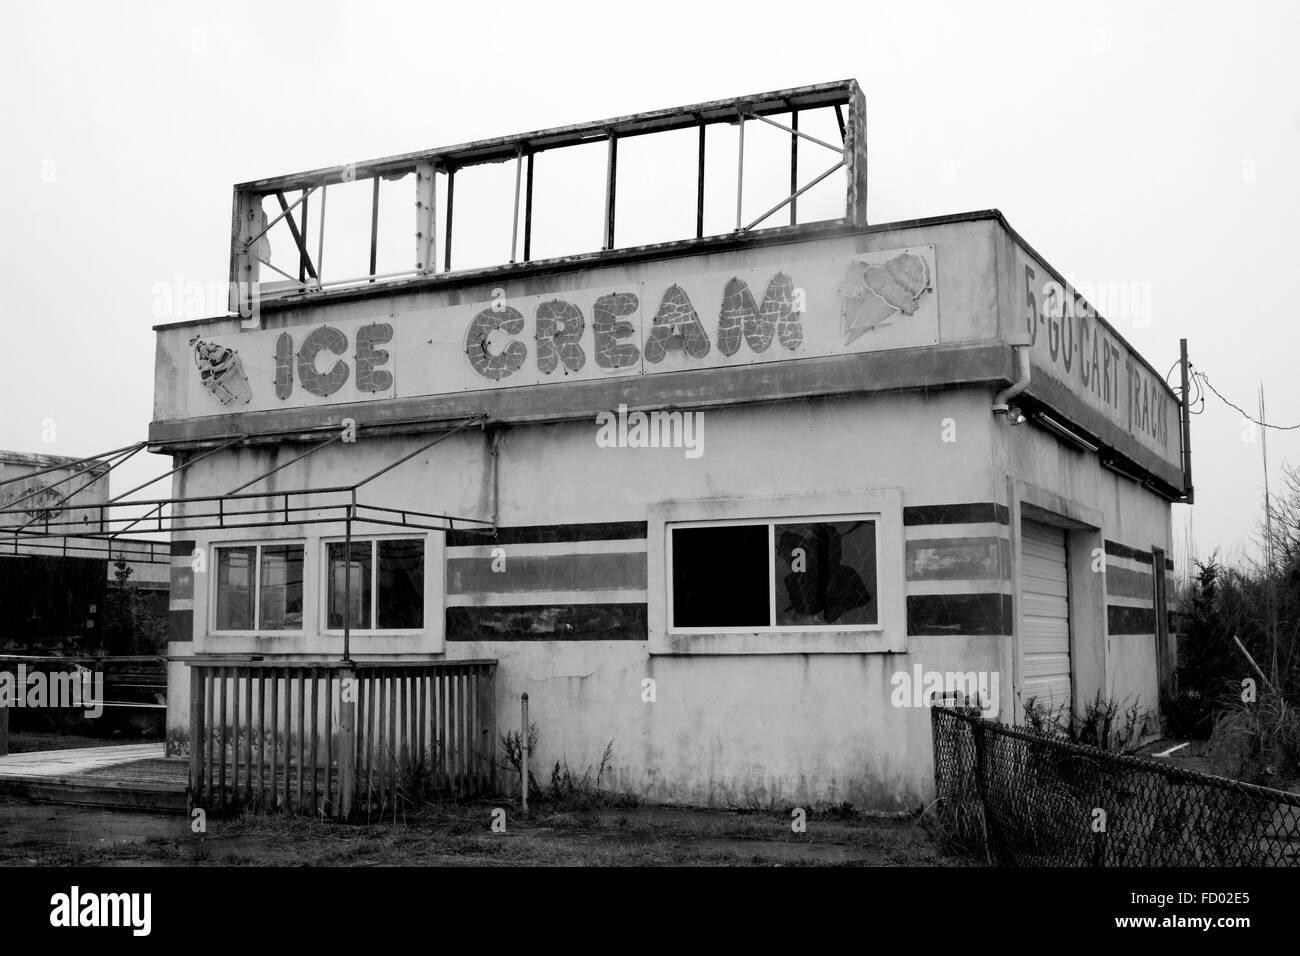 Abandoned Ice Cream Shop on the outskirts of Wildwood, New Jersey, USA. Wildwood is a popular shore area. - Stock Image